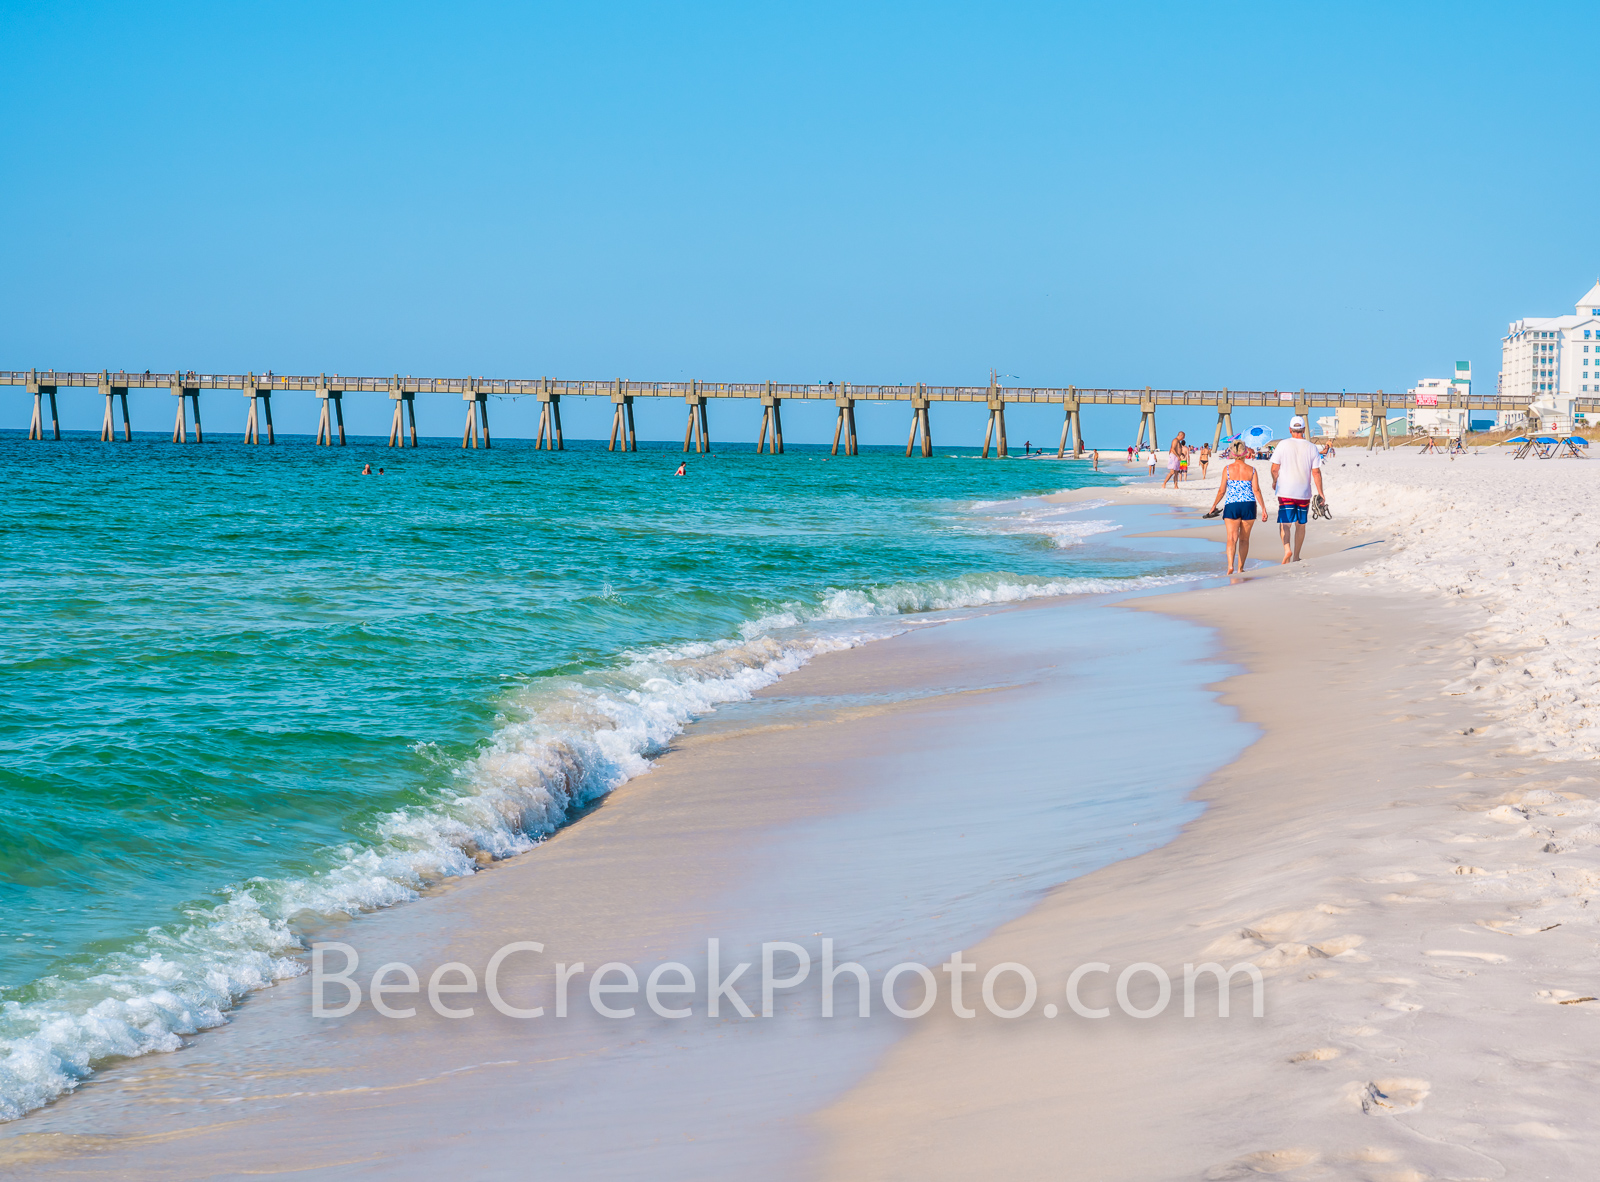 Pensacola beach, emerald waters, white sands, Pensacola, the gulf, gulf islands national seashore. Pensacola, florida panhandle, the gulf, seashore, seascape,